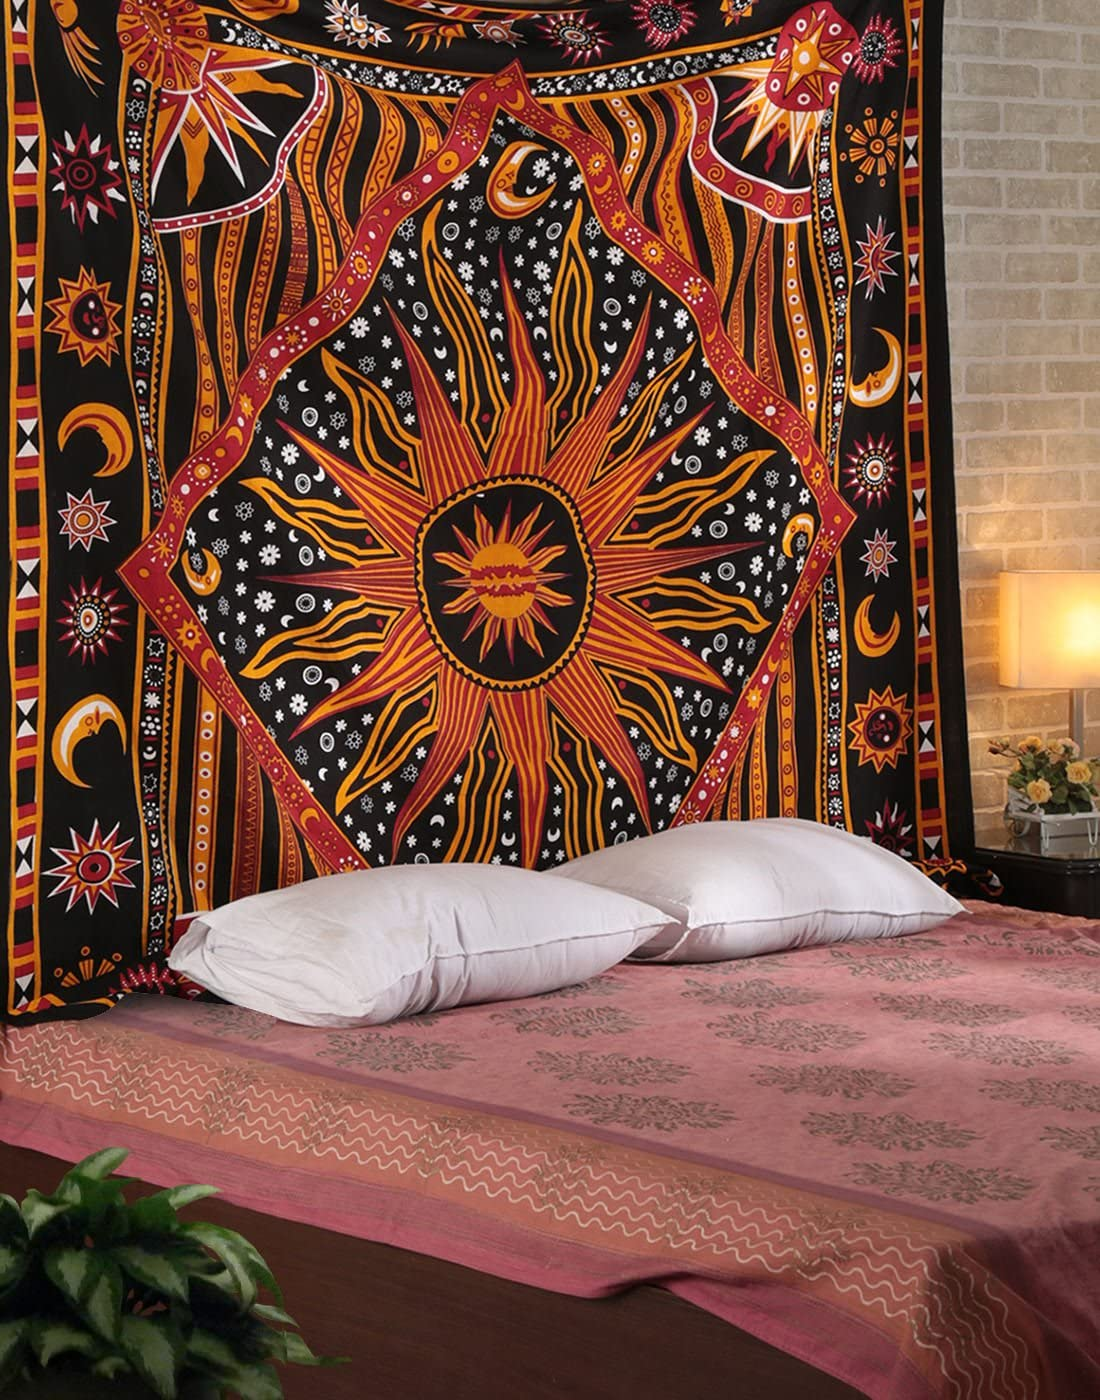 Orange Sun Star Tapestry - Trippy Psychedelic Sun Moon Tapestries Exotic Celestial Wall Art Hanging for Home Decor - 90 X 84 Inches